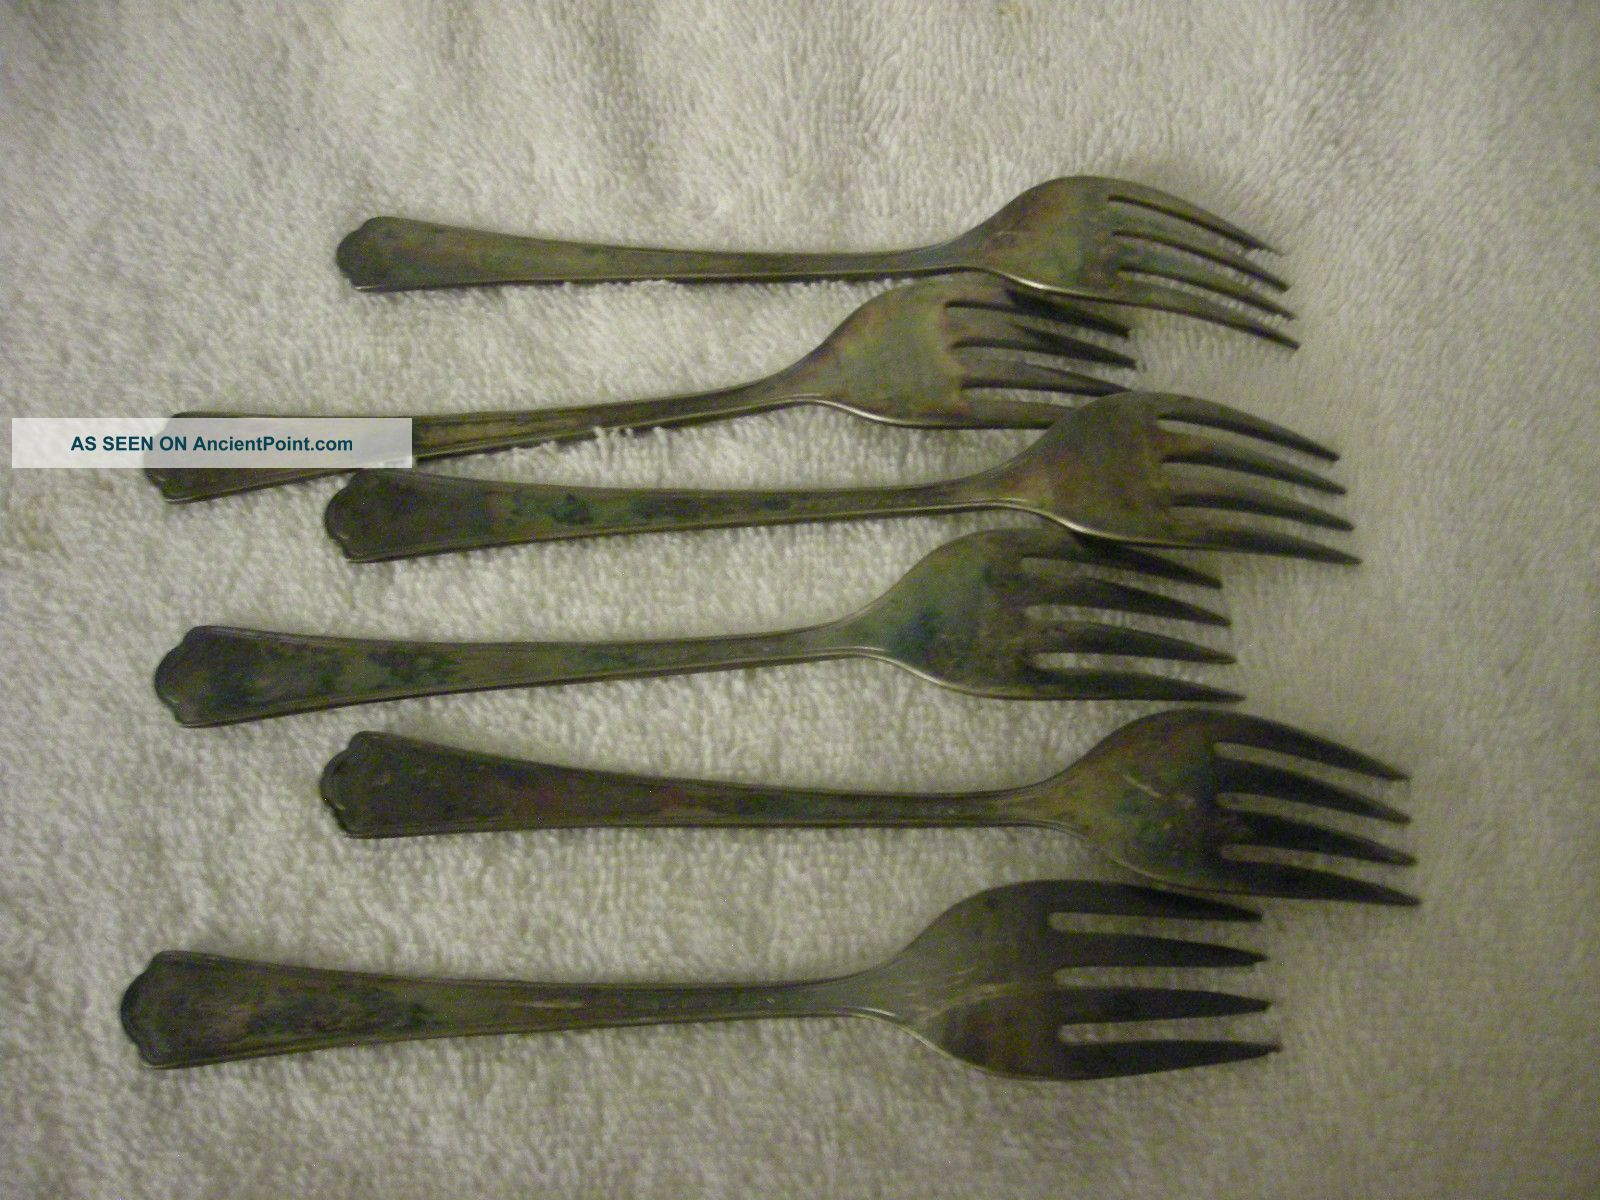 Valencia Silver Plate Dessert Forks 6 Pcs Vgc Other photo